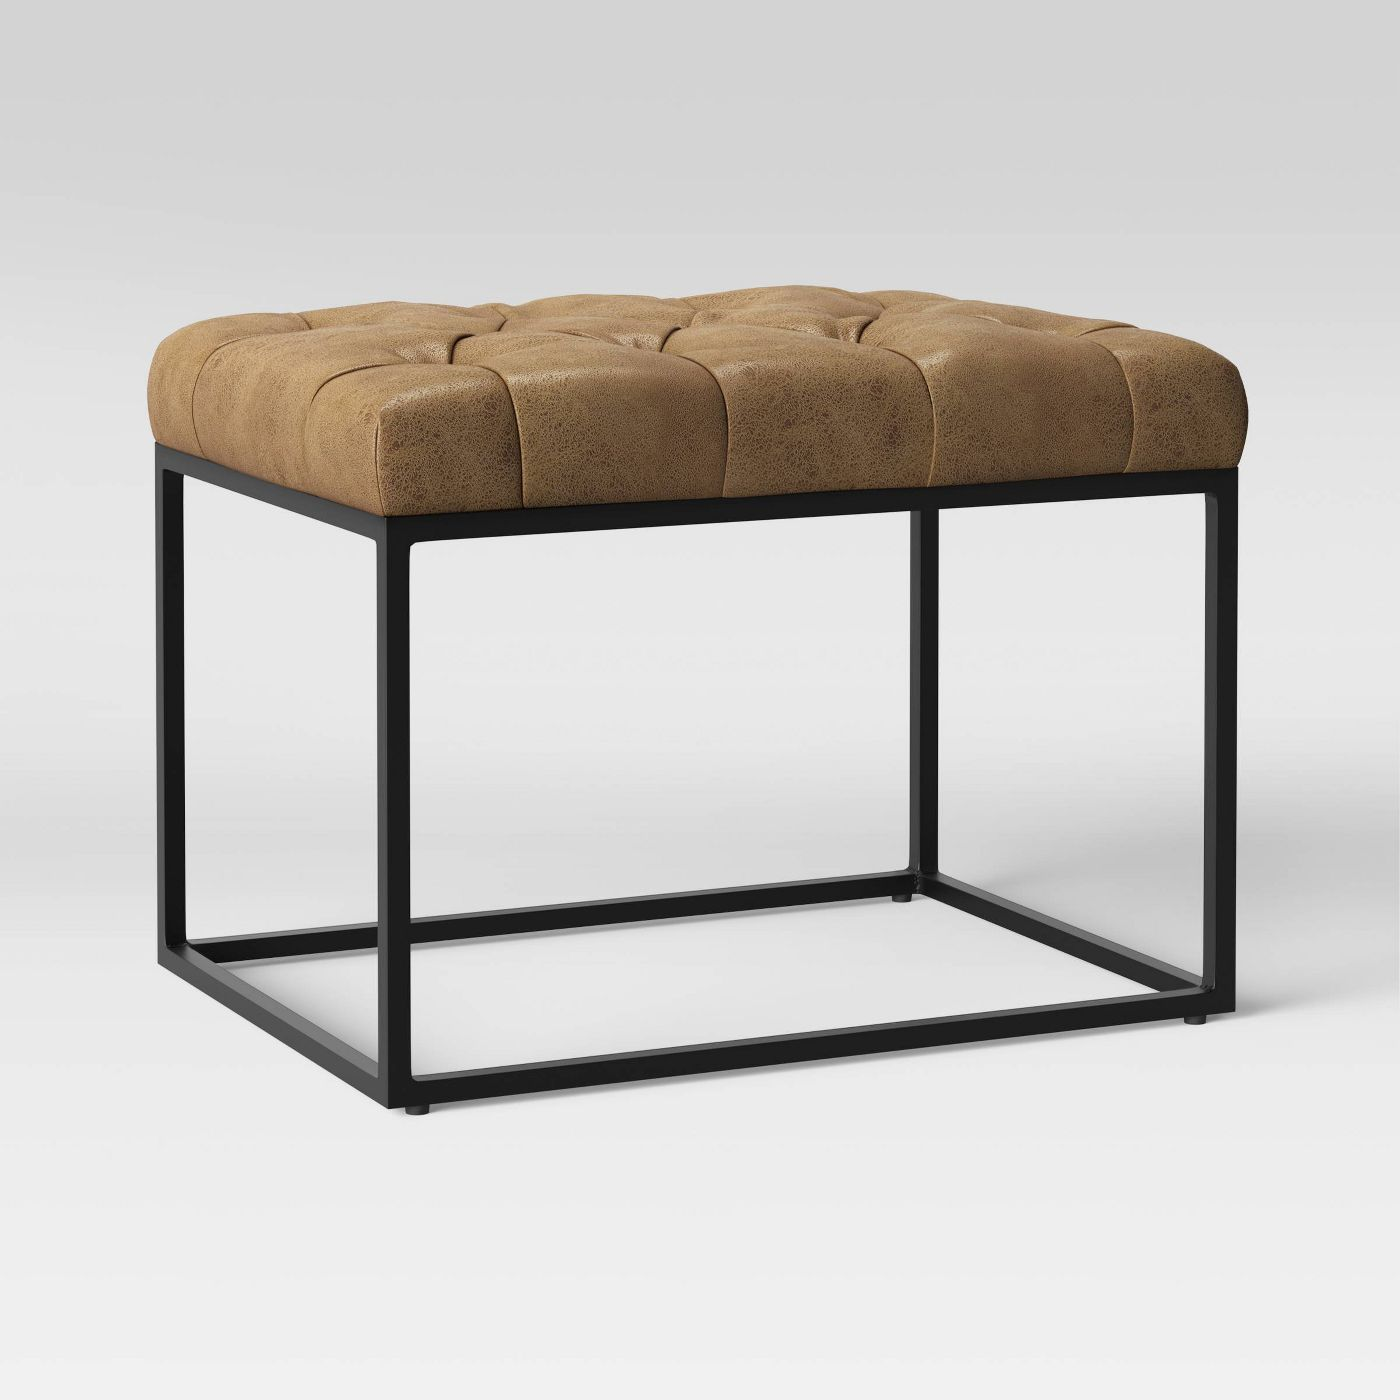 Trubeck Tufted Ottoman Faux Leather with Metal Base Brown - Project 62™ - image 3 of 5